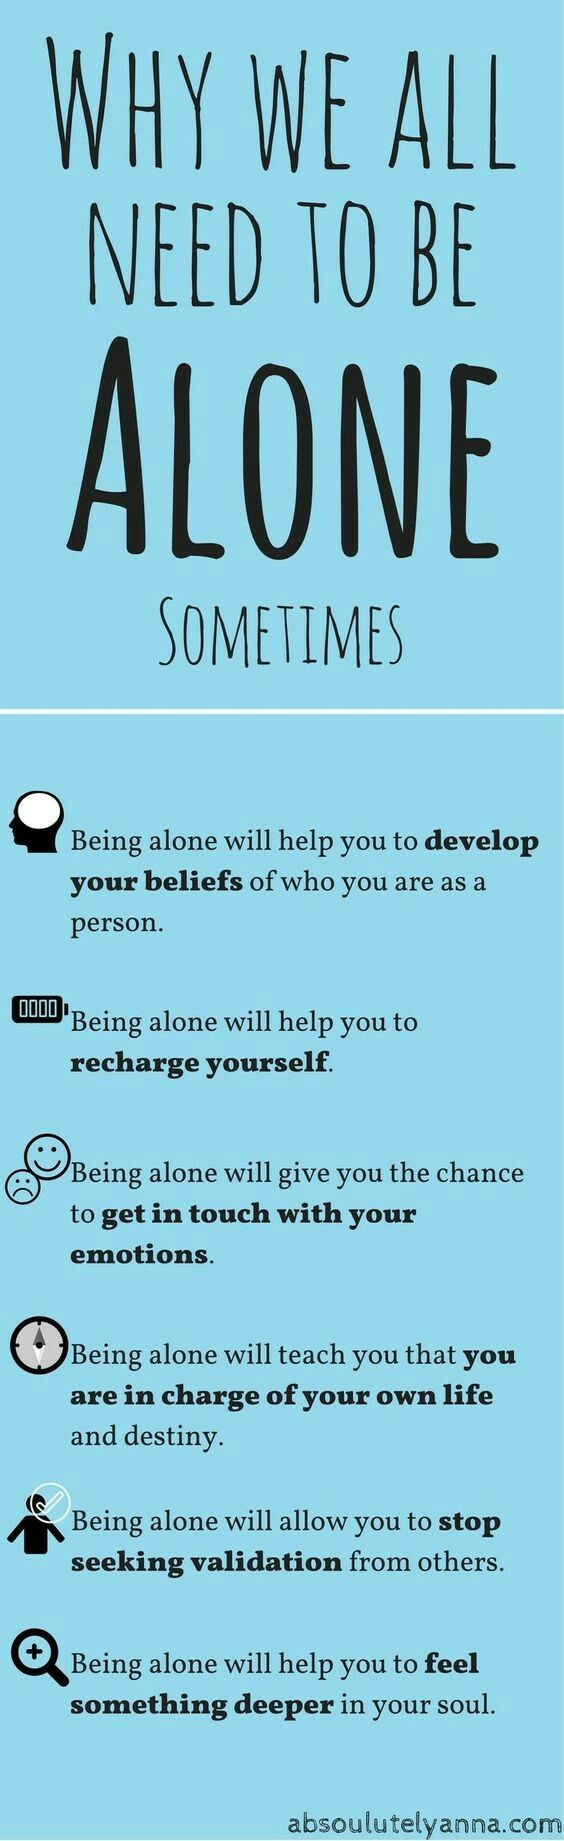 Quotes About Self Esteem Why We All Need To Be Alone Sometimes  Philo  Pinterest